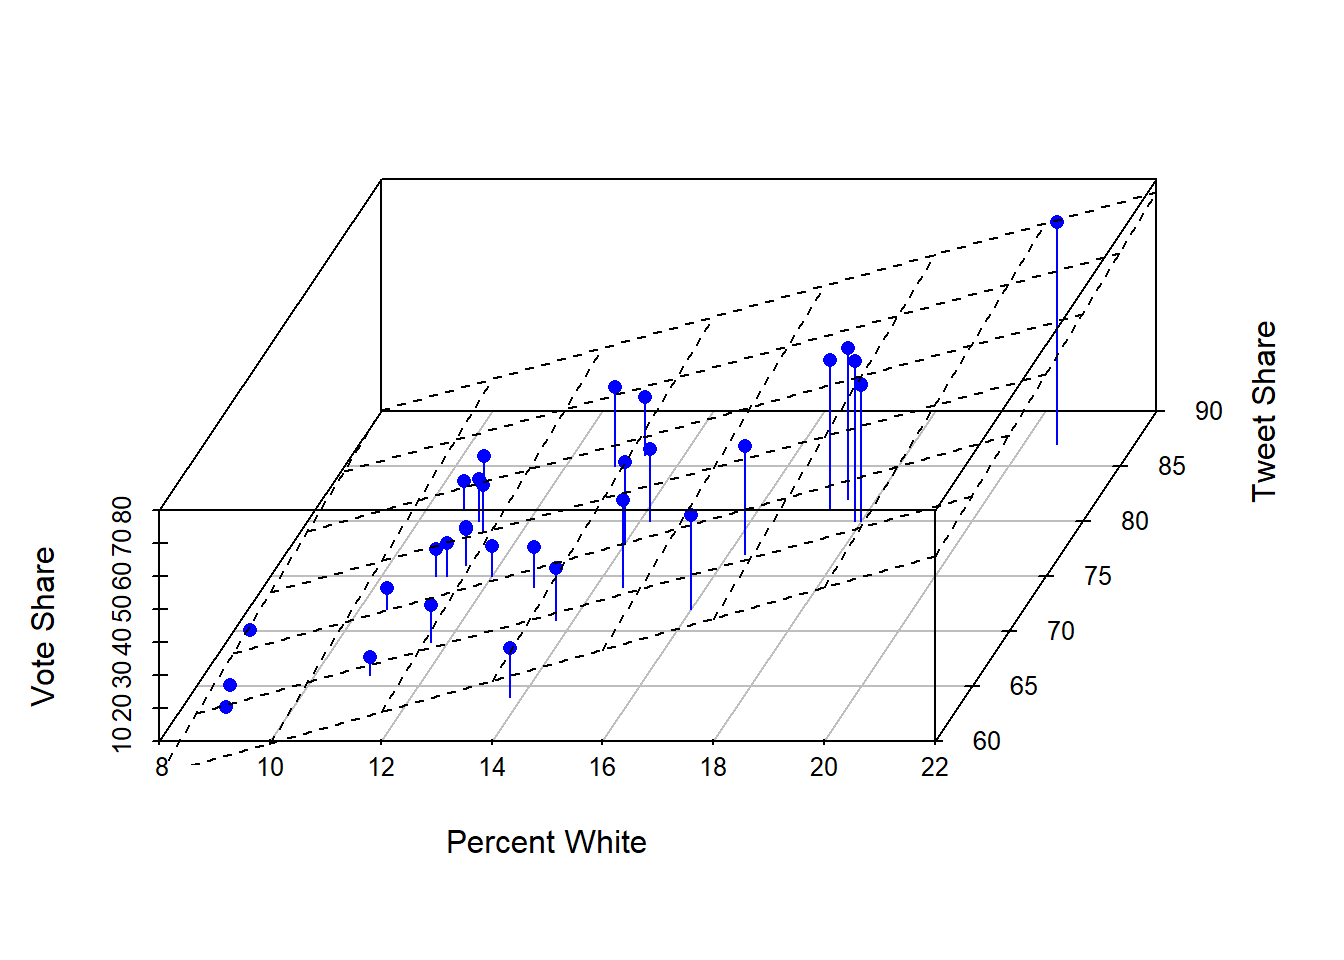 Regression plot in 3 dimensions with plane of best fit